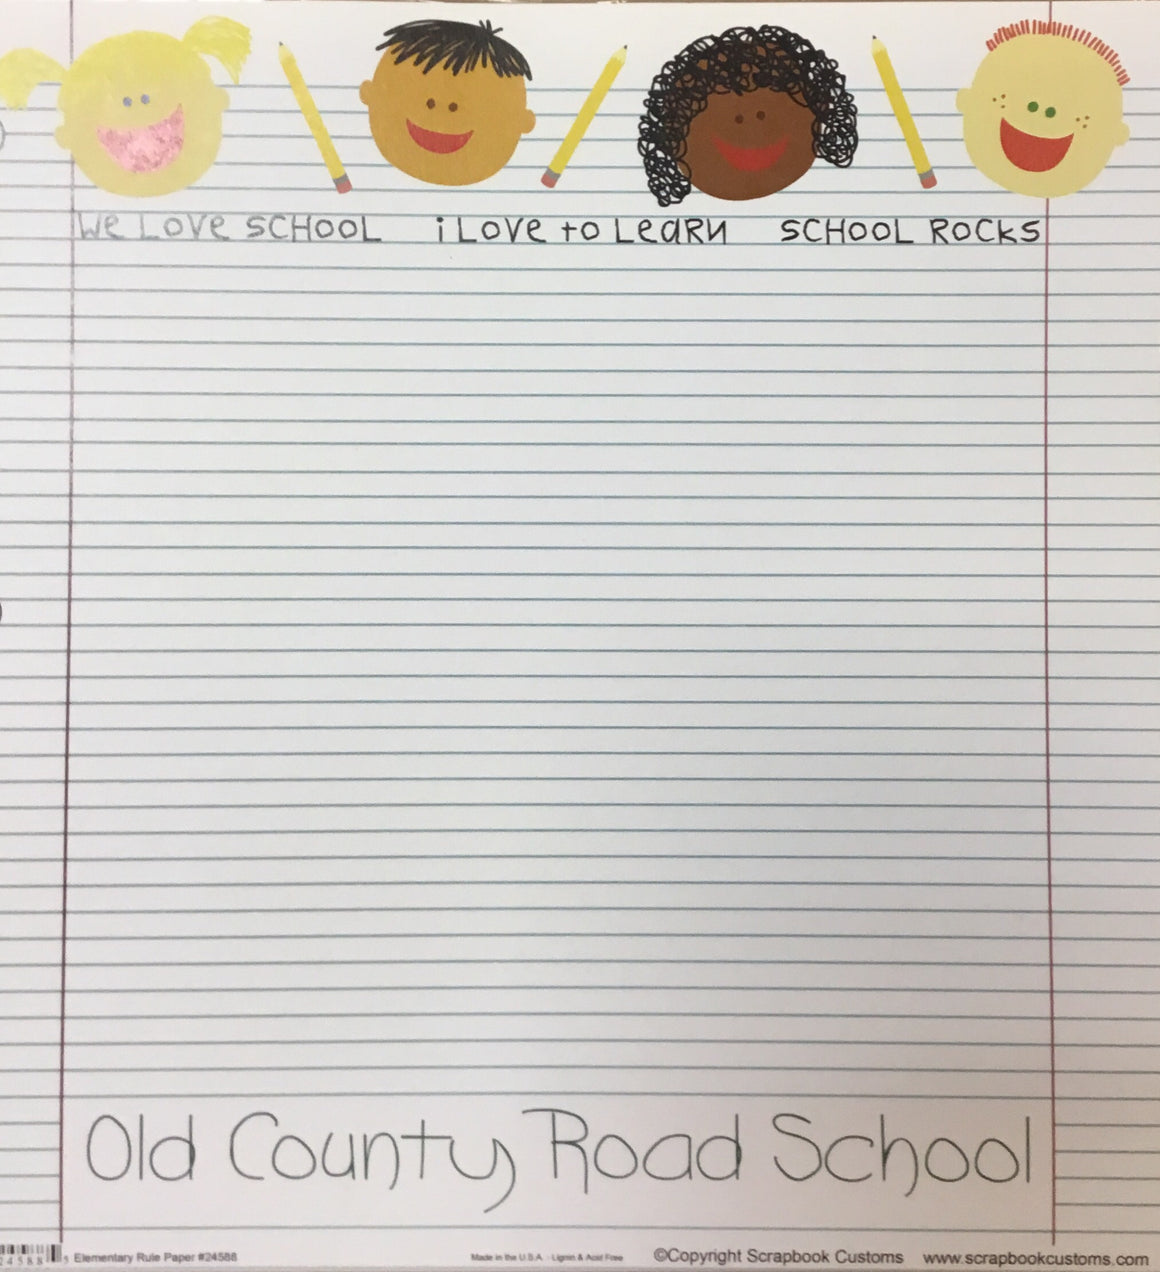 Old County Road School elementary rule paper